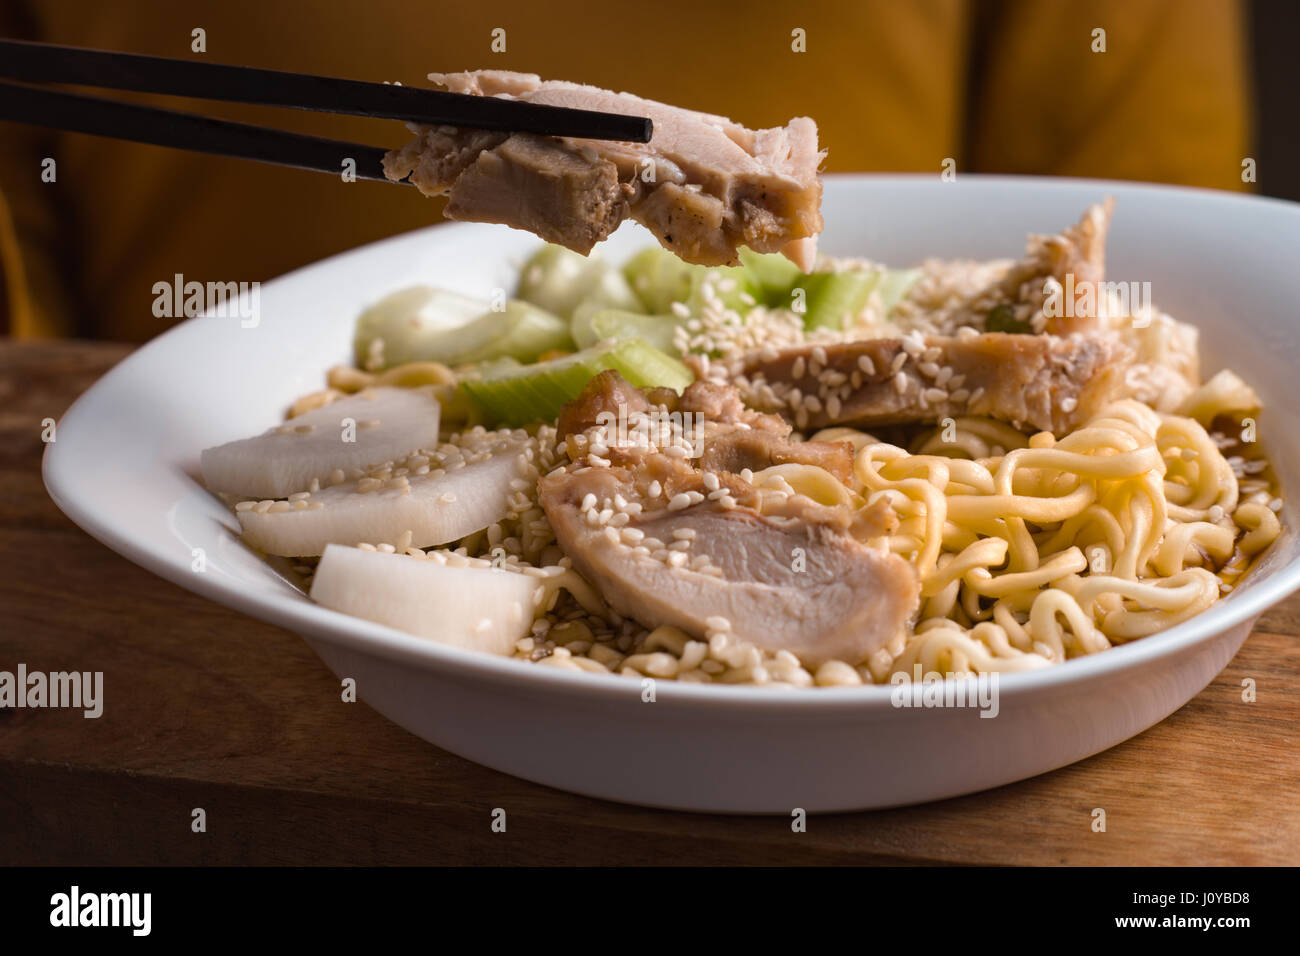 Noodles with chicken and vegetable  on the wooden board - Stock Image